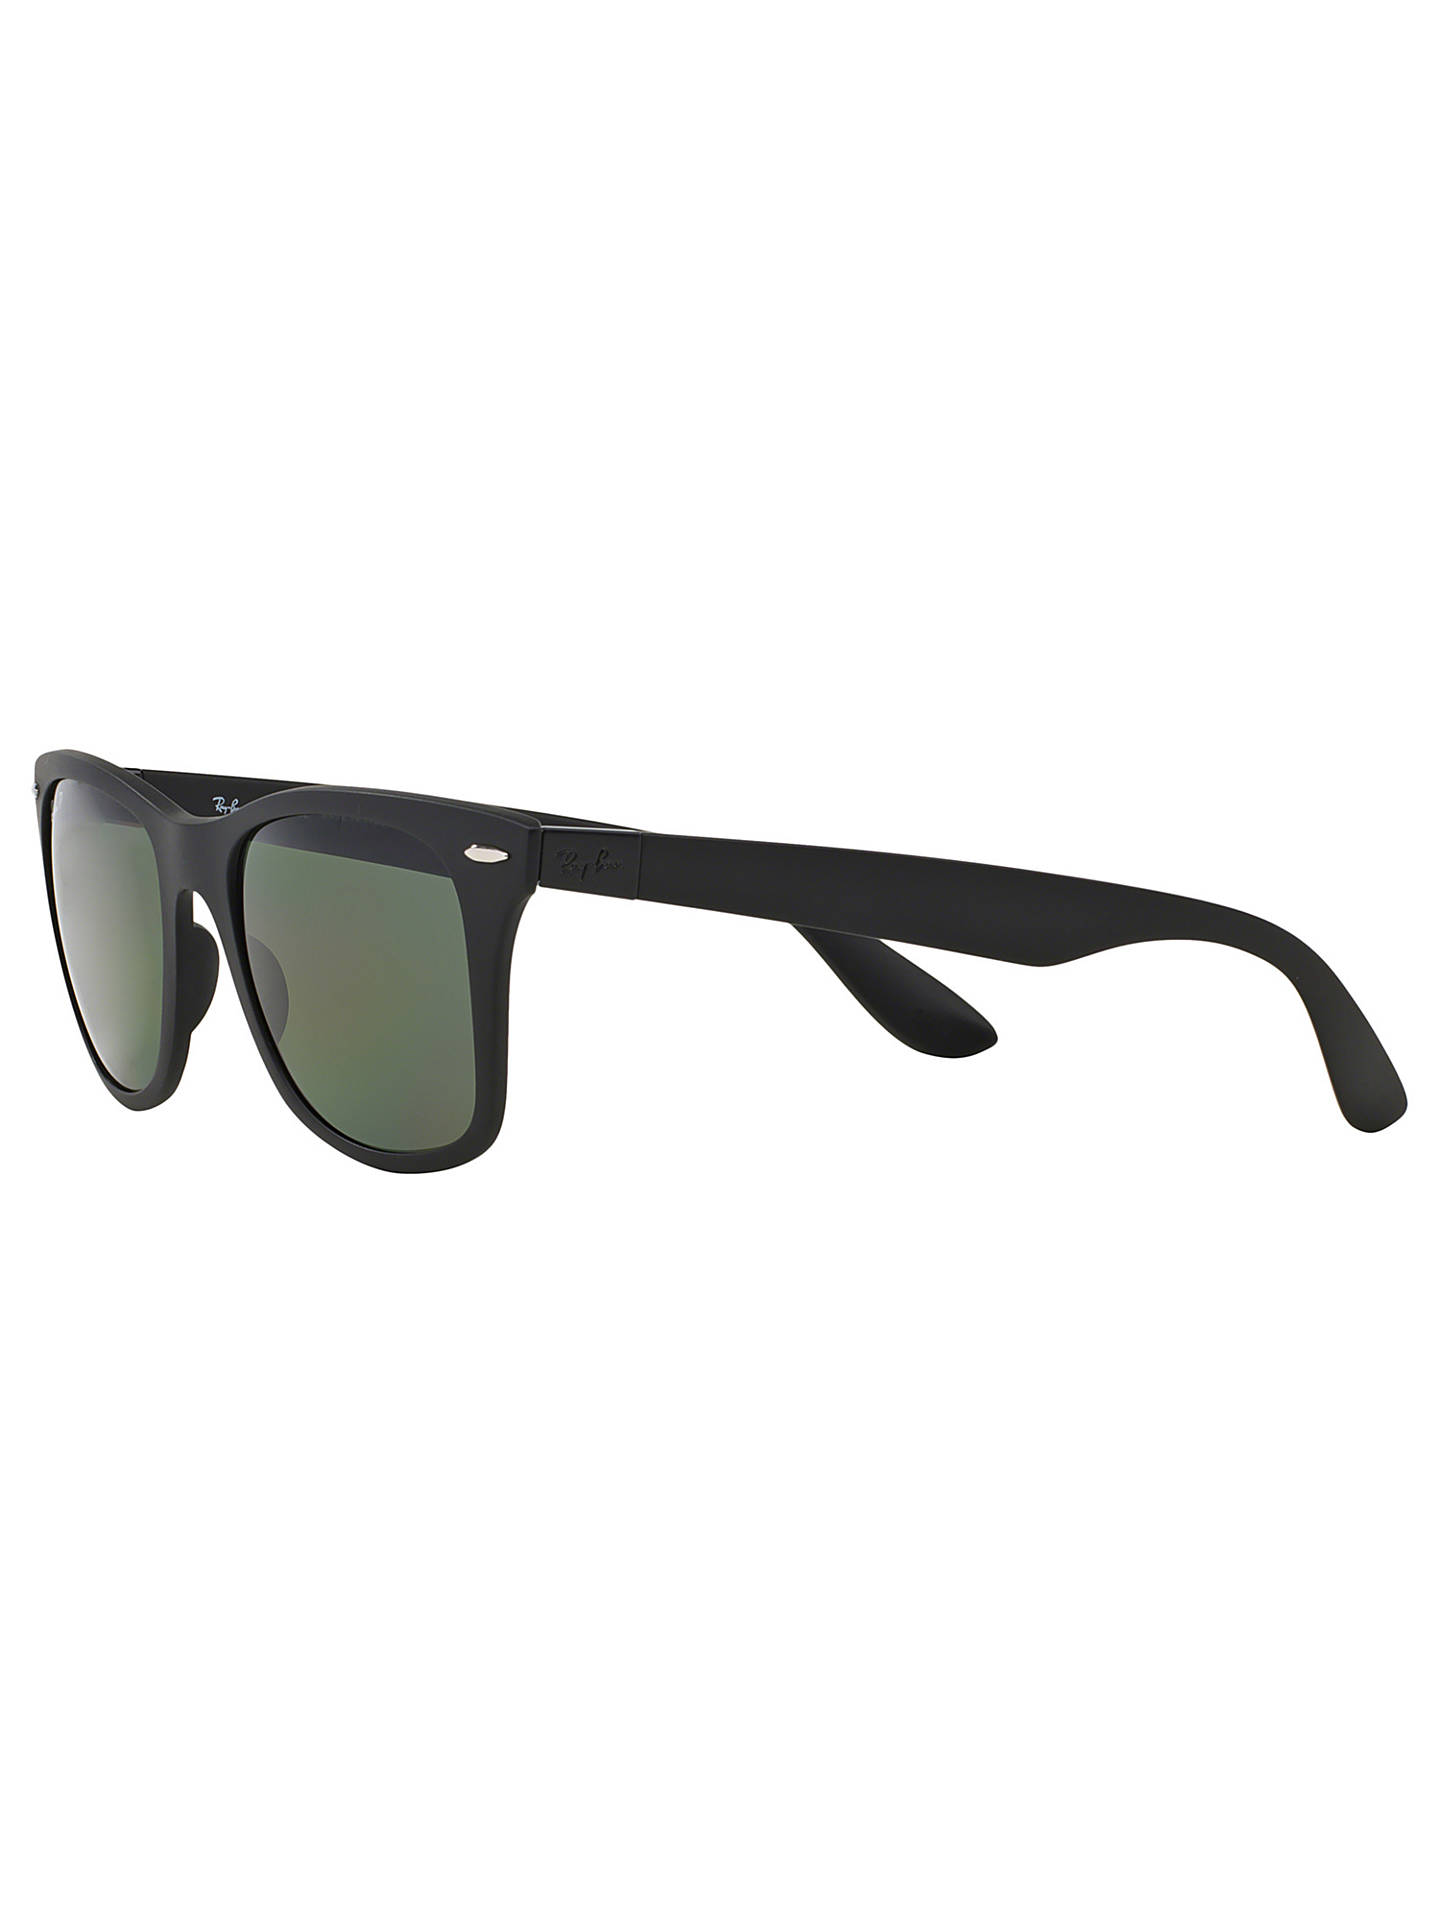 BuyRay-Ban RB4195 Polarised Lite Force Wayfarer Sunglasses, Matte Black/Dark Green Online at johnlewis.com